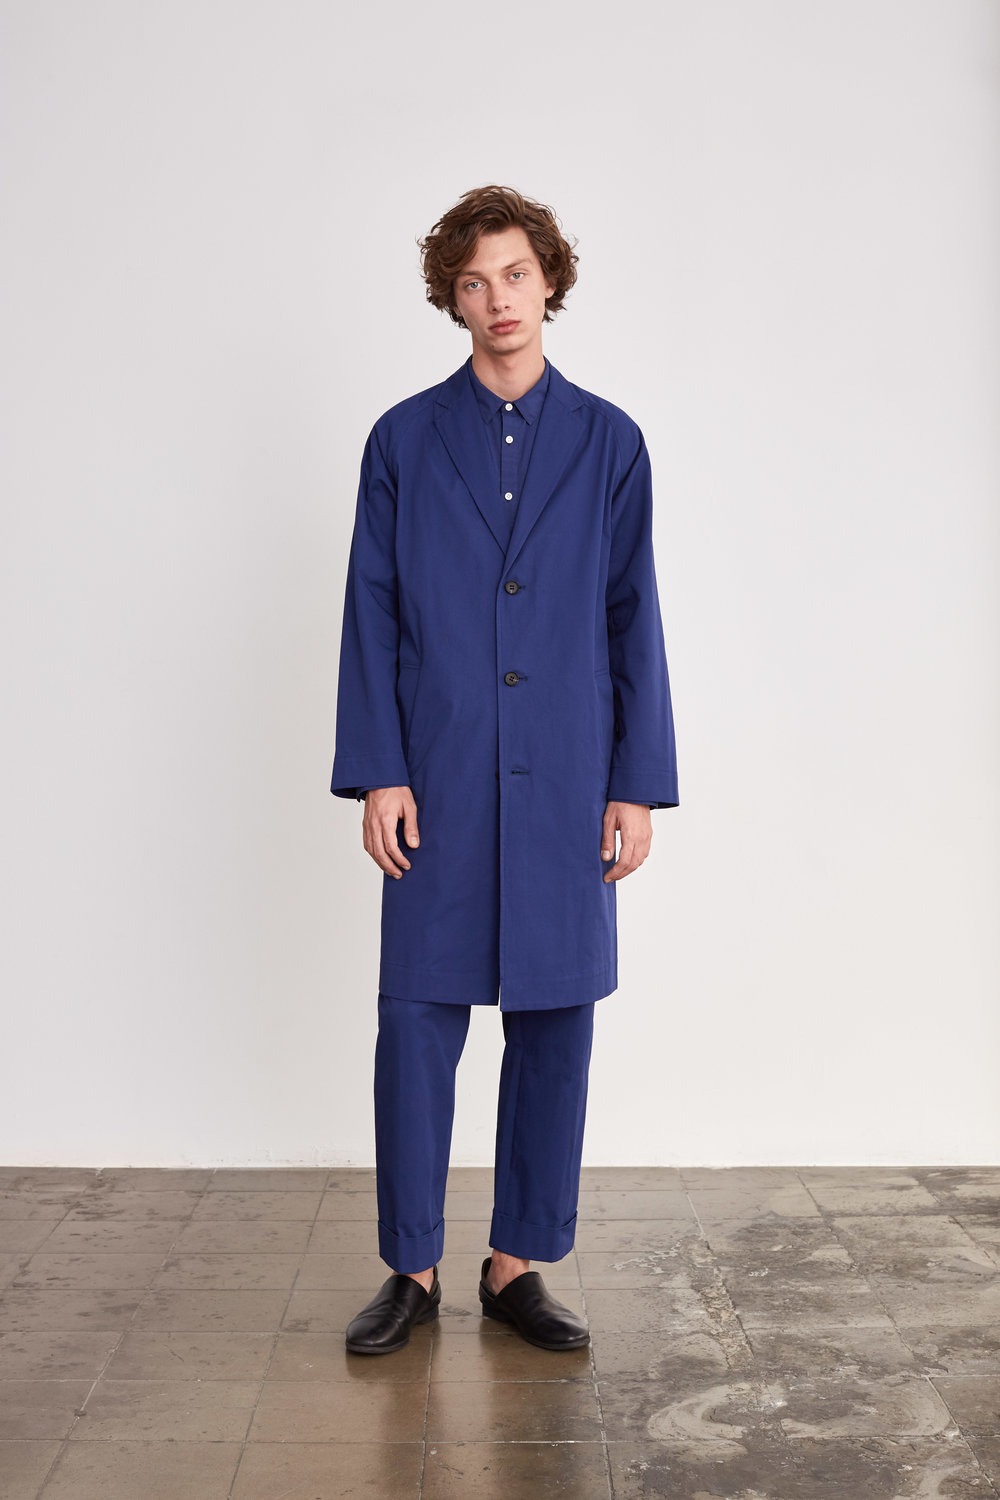 <b>5</b><br>Victor Typewriter Shirt<br>Austin Cotton Pants<br>Donald Cotton Coat